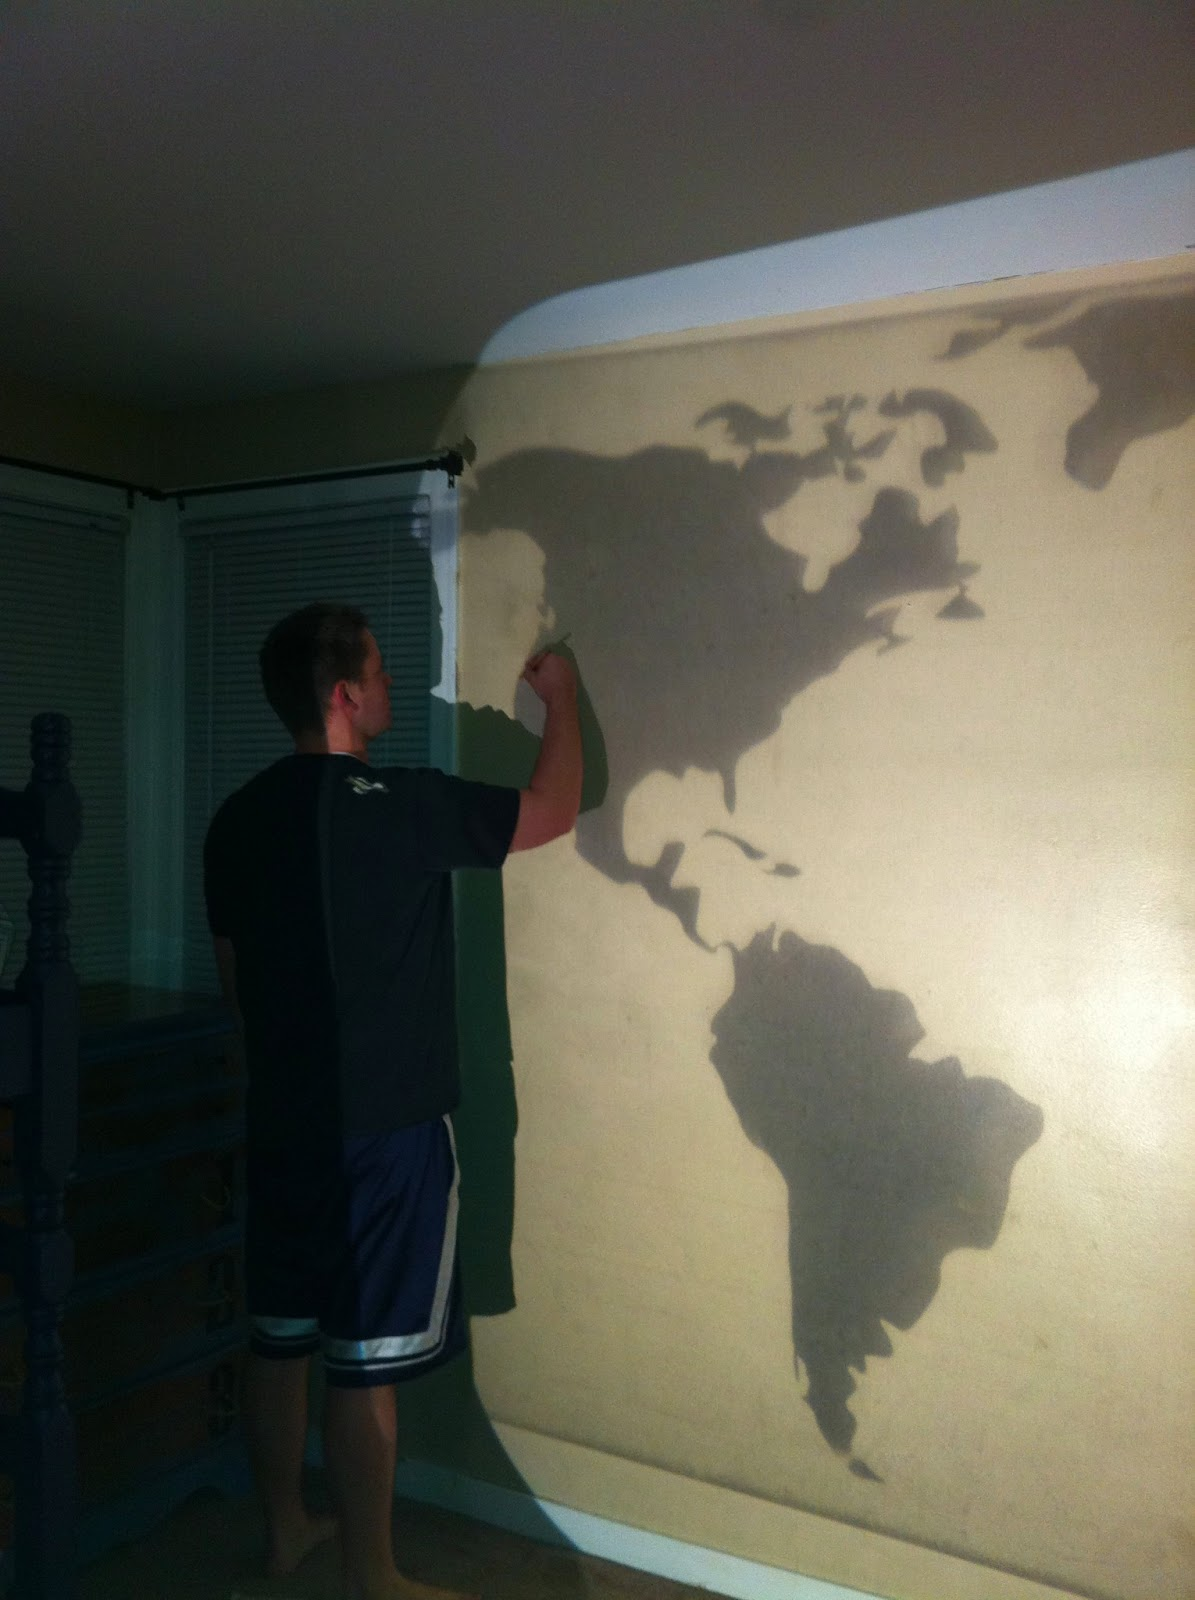 diy world map wall mural classy clutter next i used the premixed rustoleum navy blue paint that i had left over from the stenciled biplane dresser i did i used a tiny little paint brush about